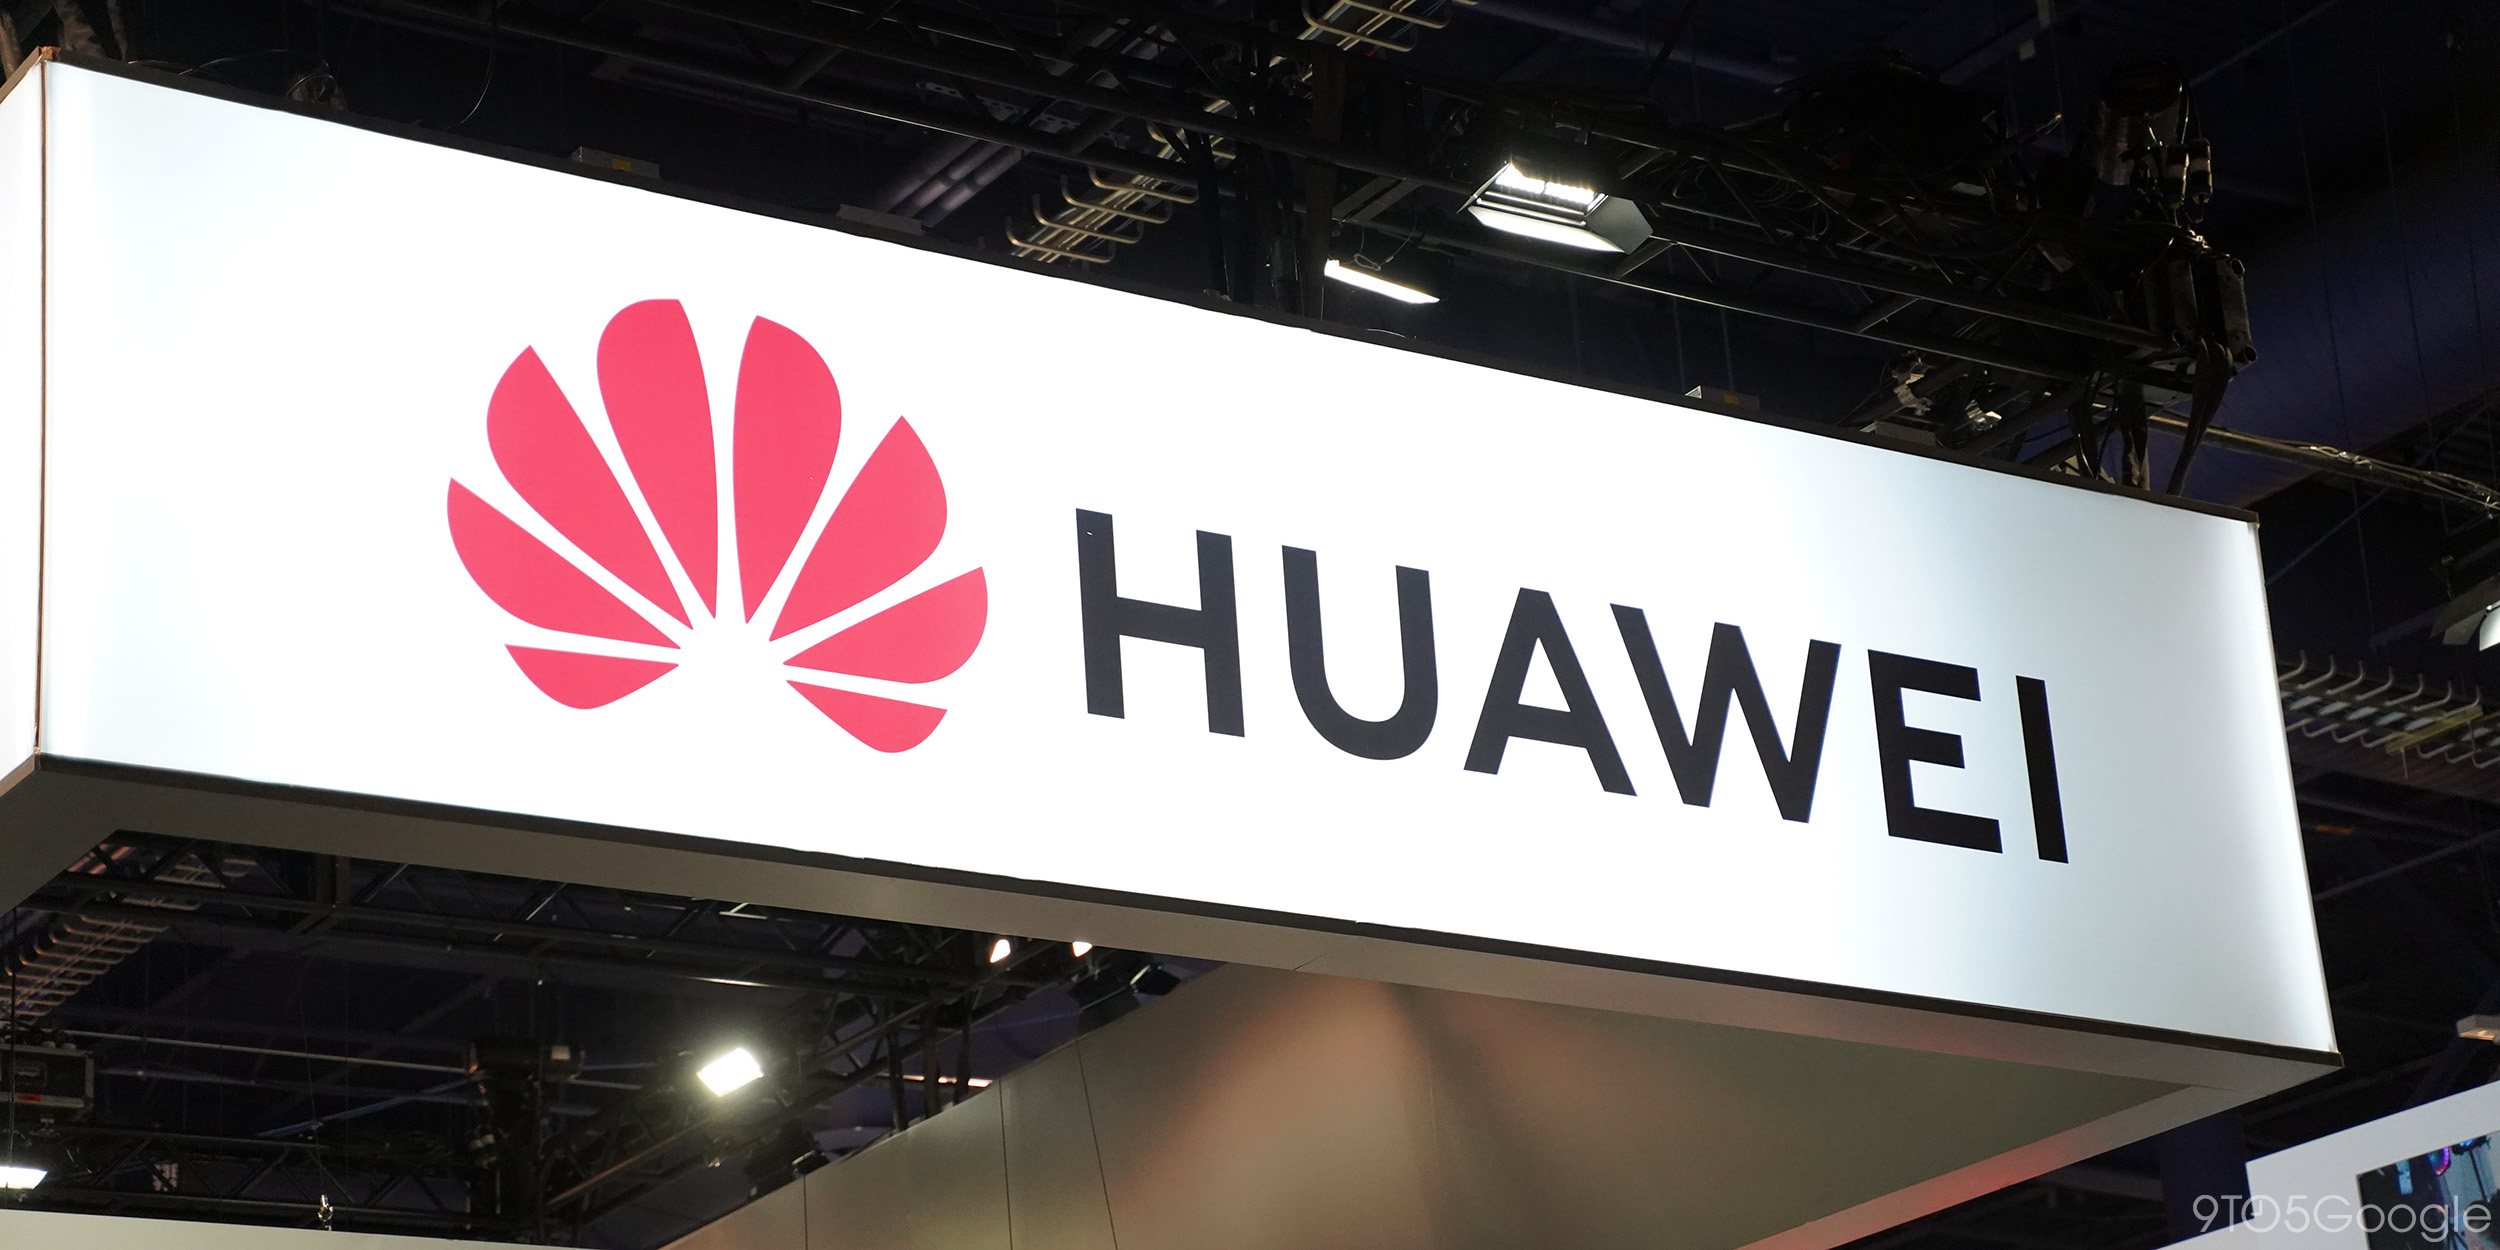 Trump administration puts Huawei on export blacklist, can't import US hardware without government approval